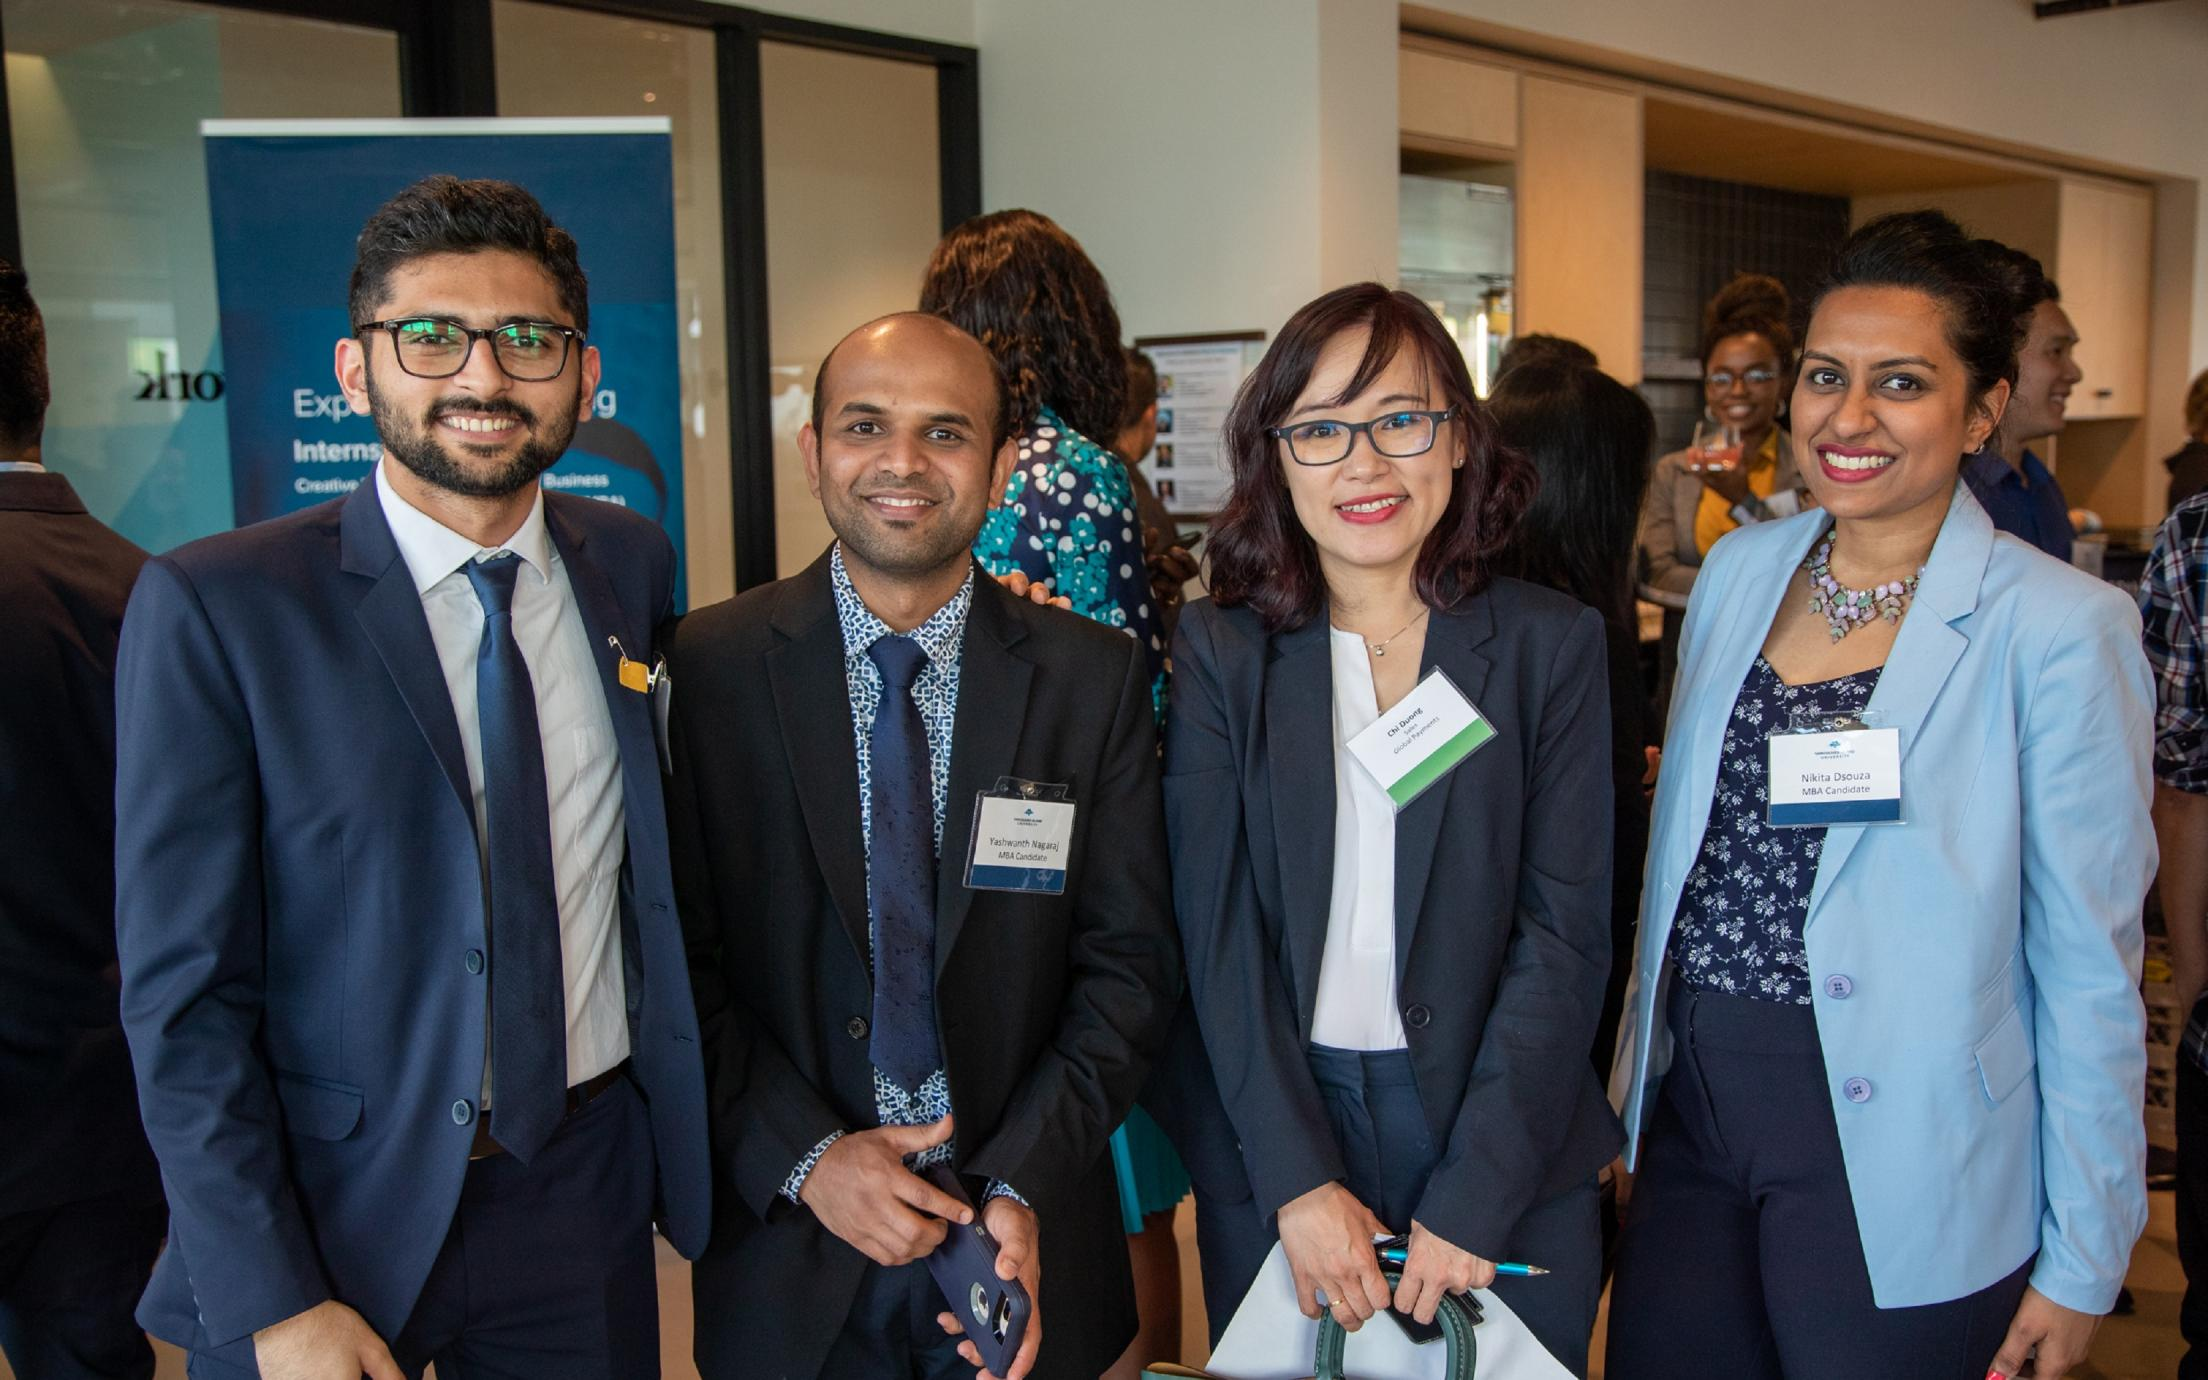 A group of four MBA students standing together at an event